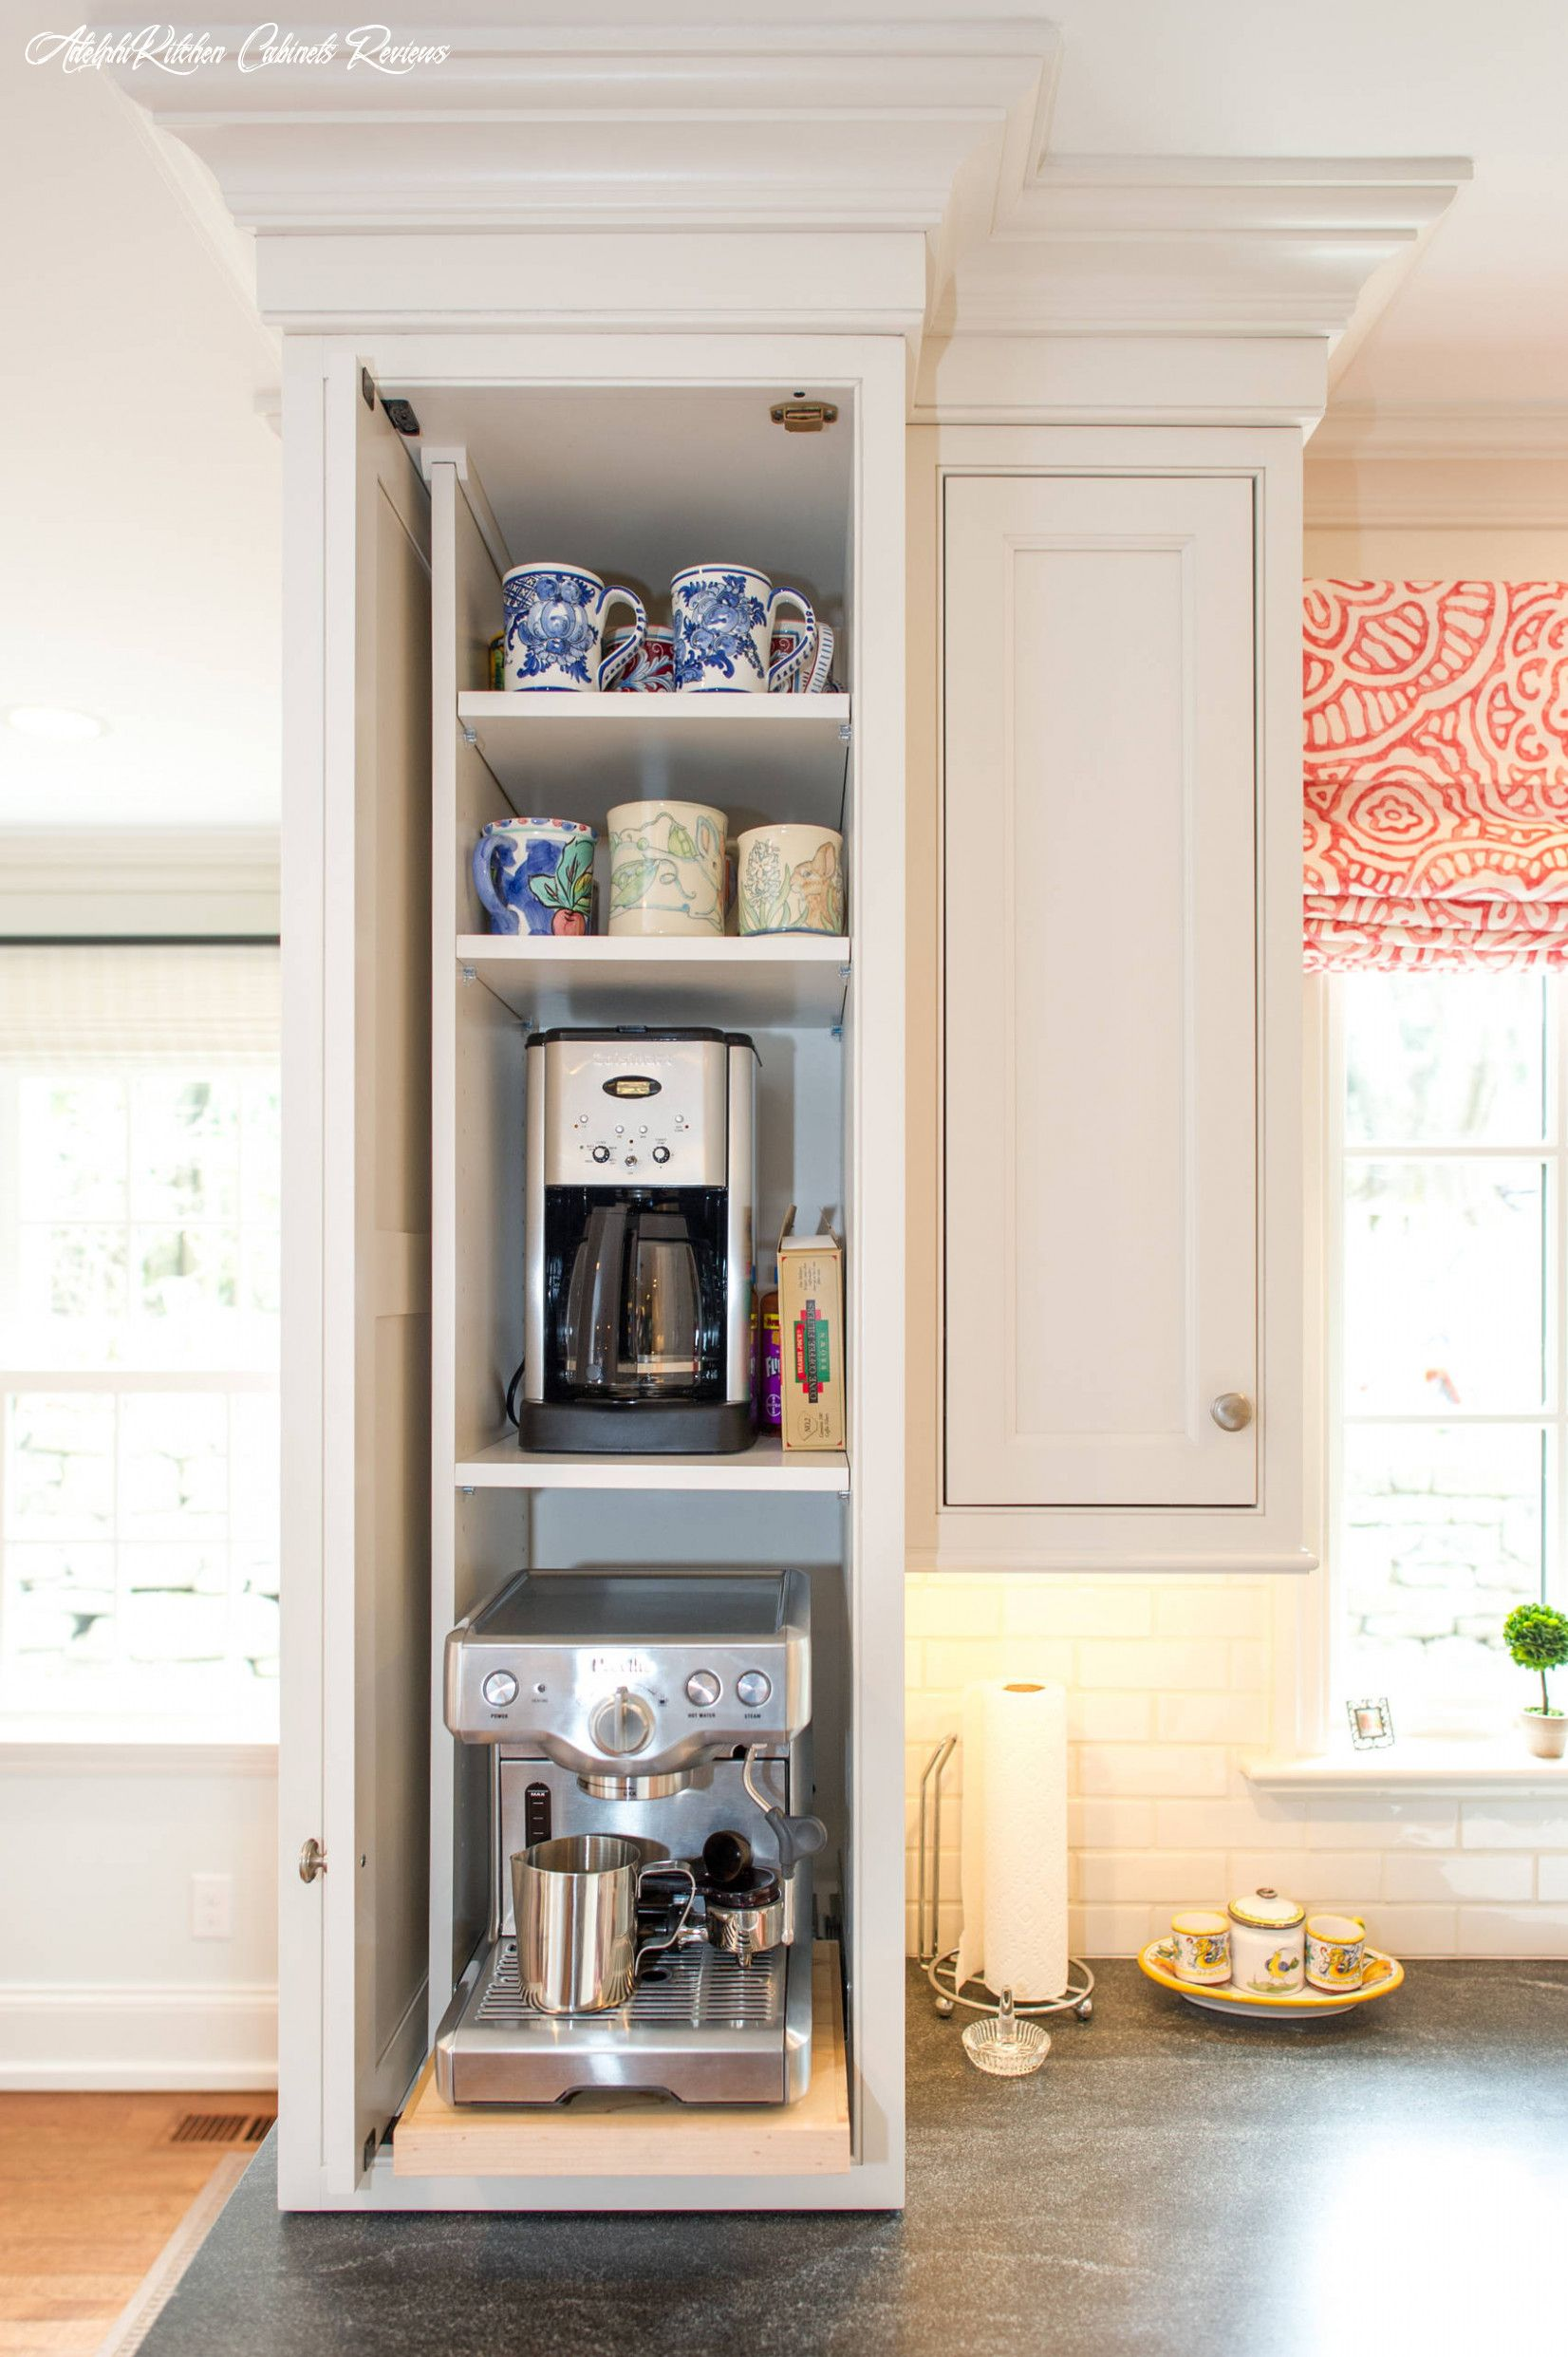 Adelphi Kitchen Cabinets Reviews In 2020 Appliance Garage Coffee Station Home Coffee Stations